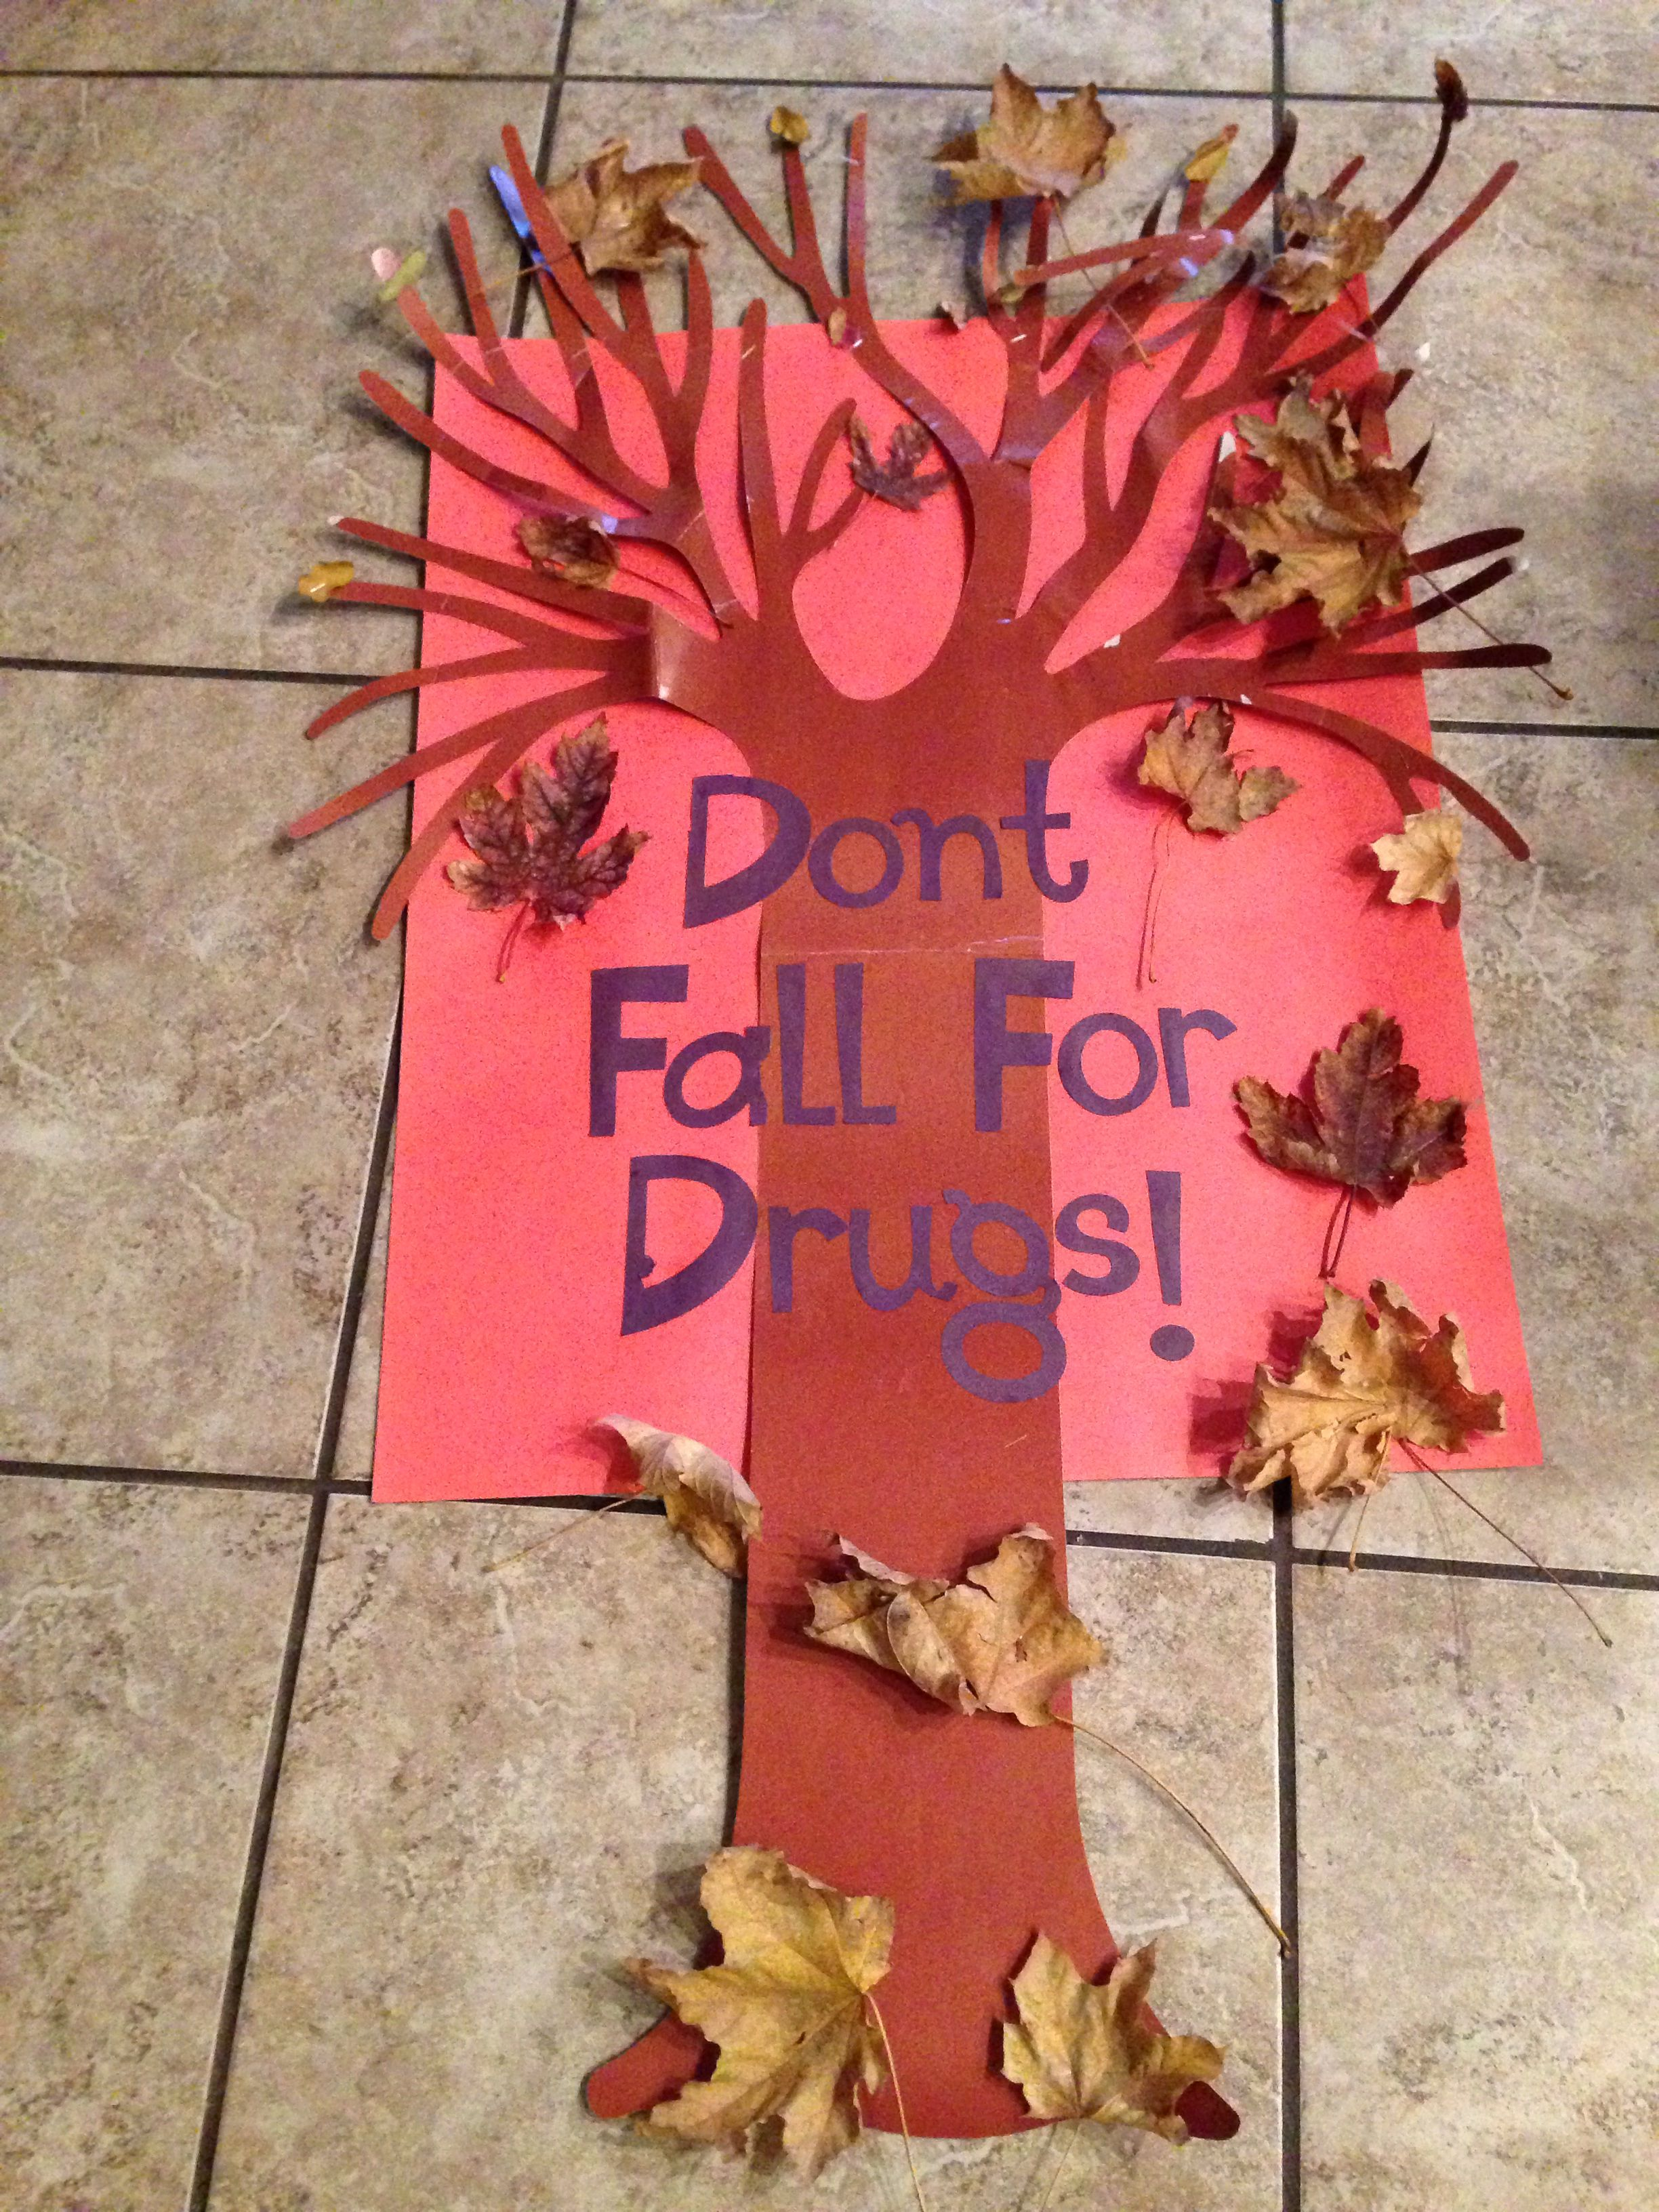 Essay on say no to drugs